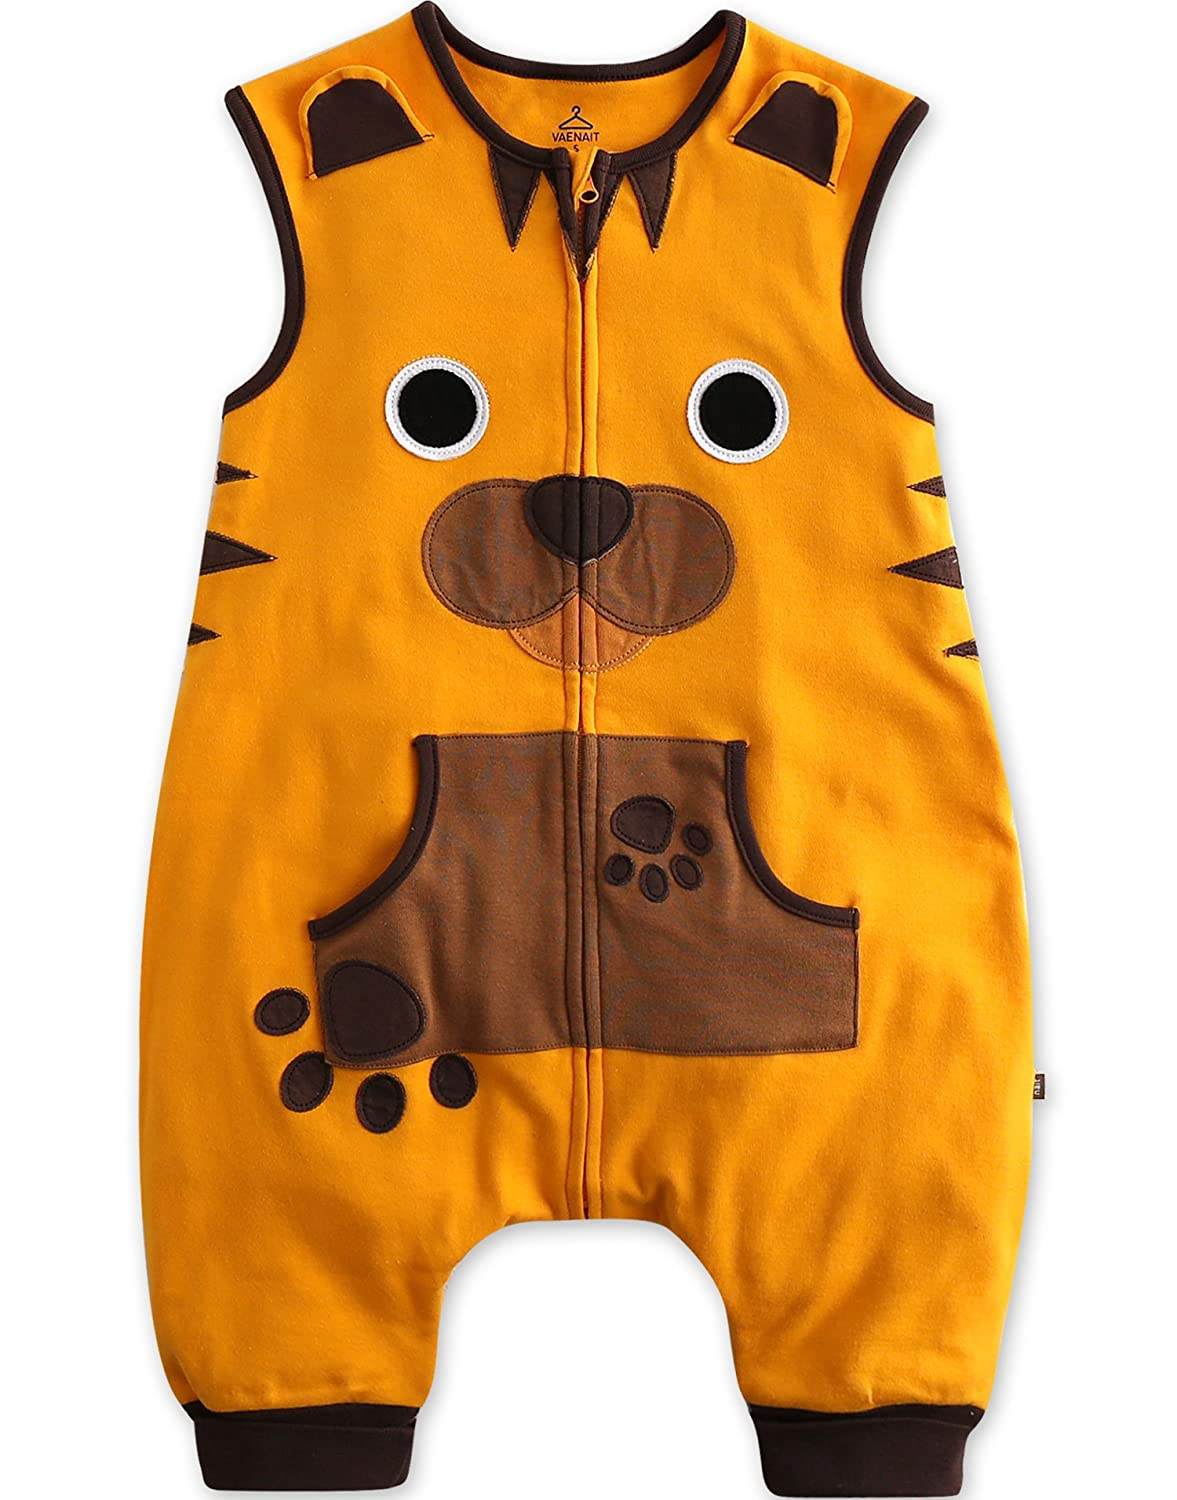 Vaenait Baby 1-7 Years Kids Boys Double-Layered Cotton Wearable Blanket Sleeper Sleep Tiger VSS_057